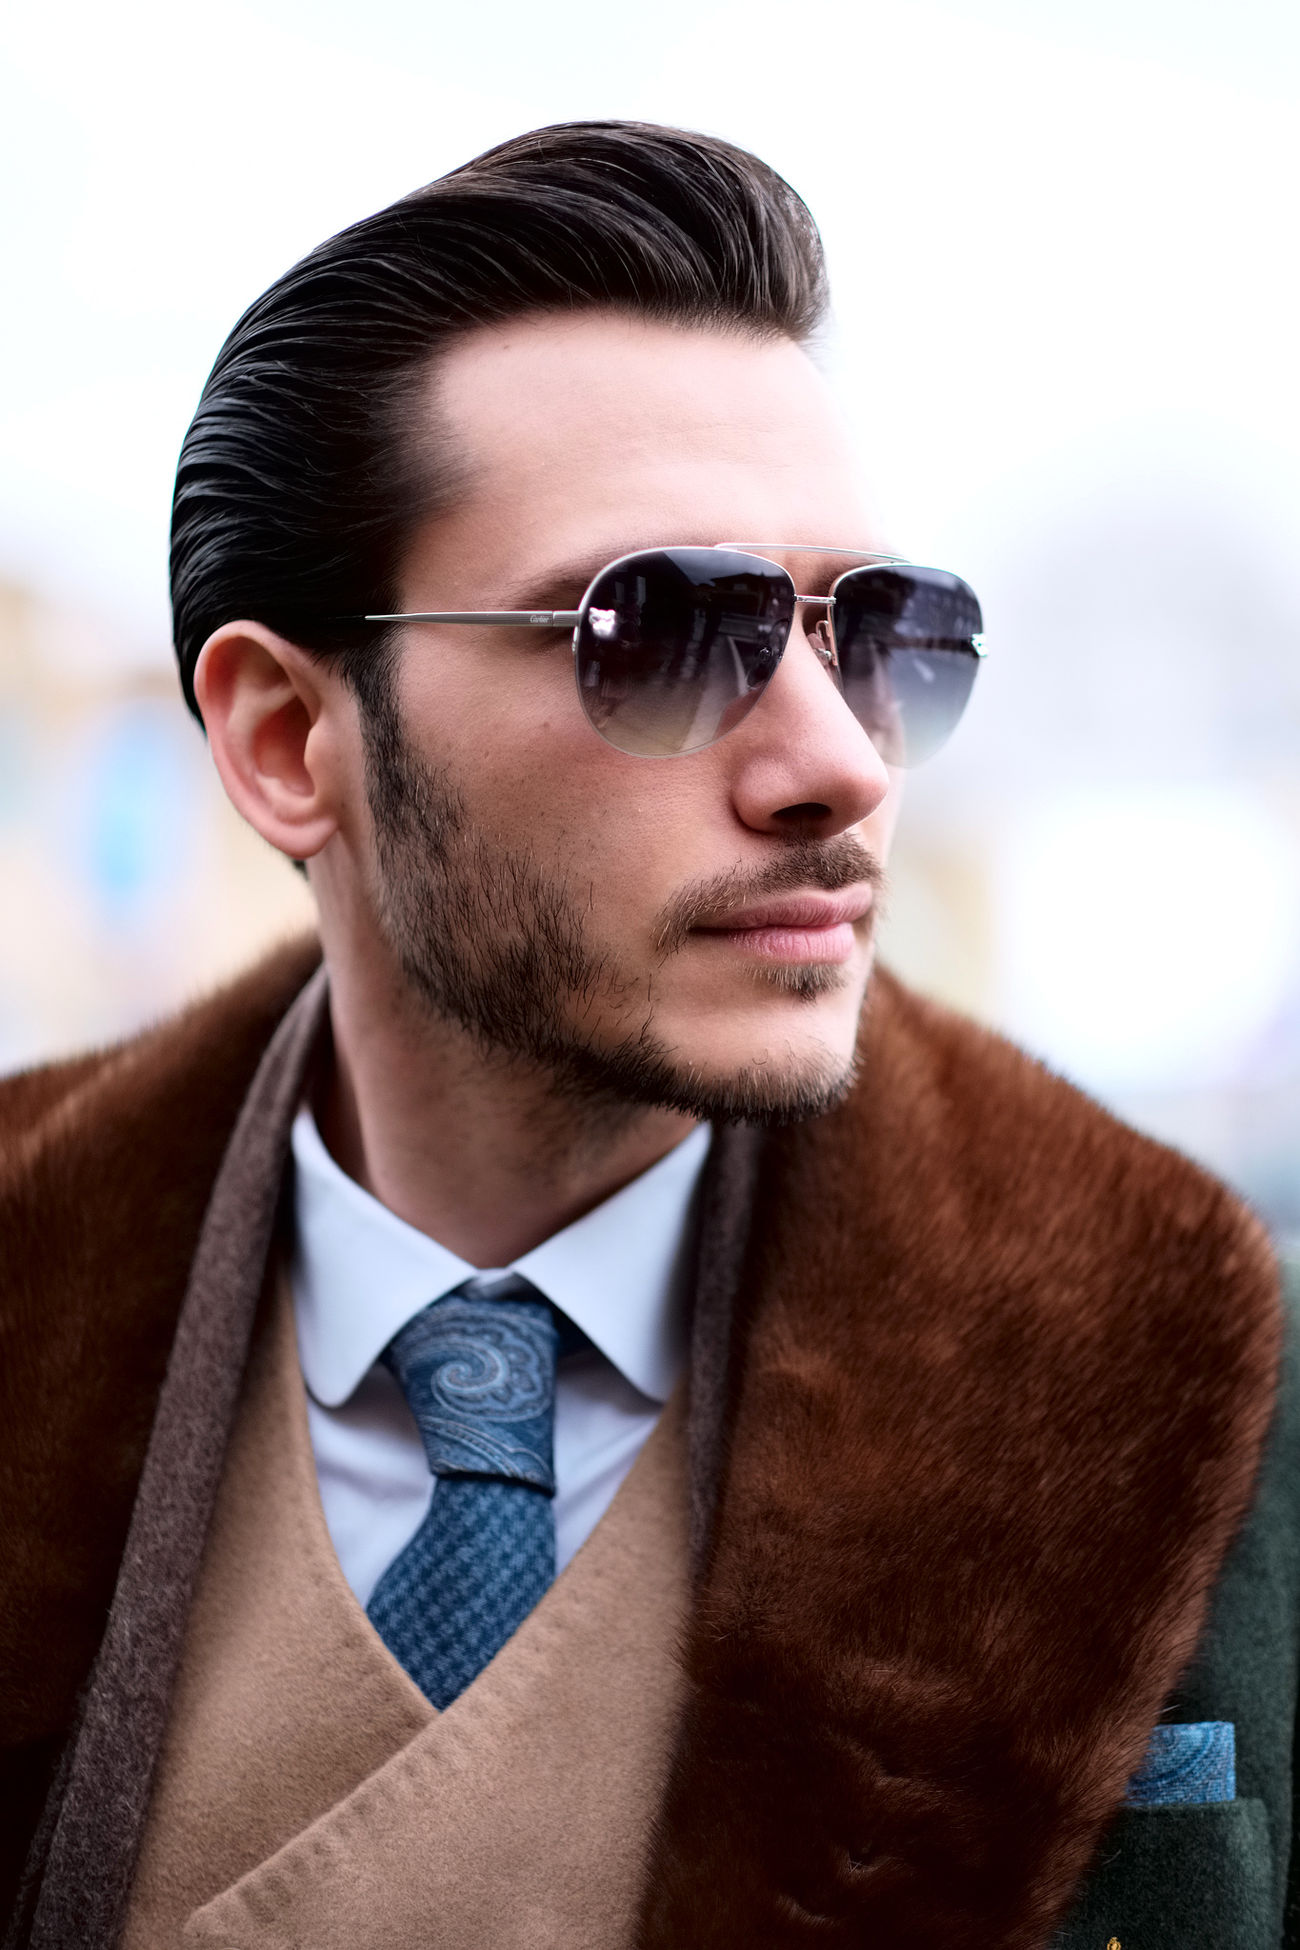 Portrait of stylish Omer taken in Florence Close-up Fashion Fashion Fashionable Fashionista Hairstyle Handsome Headshot Male Fashion Males  Men Only Men Outdoors Portrait Portrait Photography Portraiture Street Fashion Sunglasses Young Adult Young Men